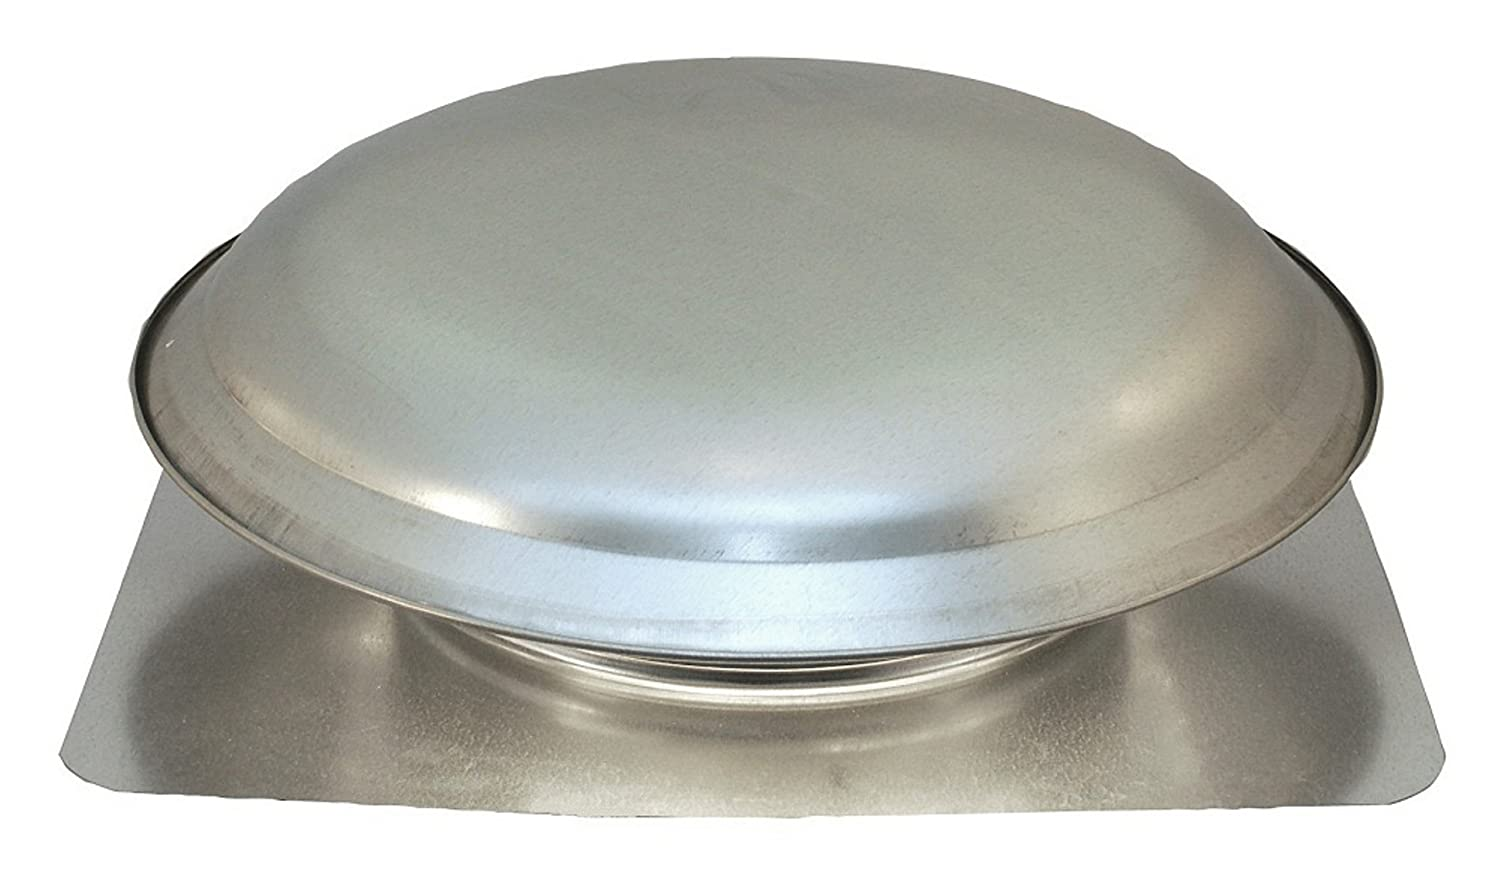 Cool Attic CX3000EEAM Power Roof Galvanized Steel Vent Dome With 2.1 Amp  Energy Efficient PSC Motor, Mill   Ventamatic Power Roof Vent   Amazon.com